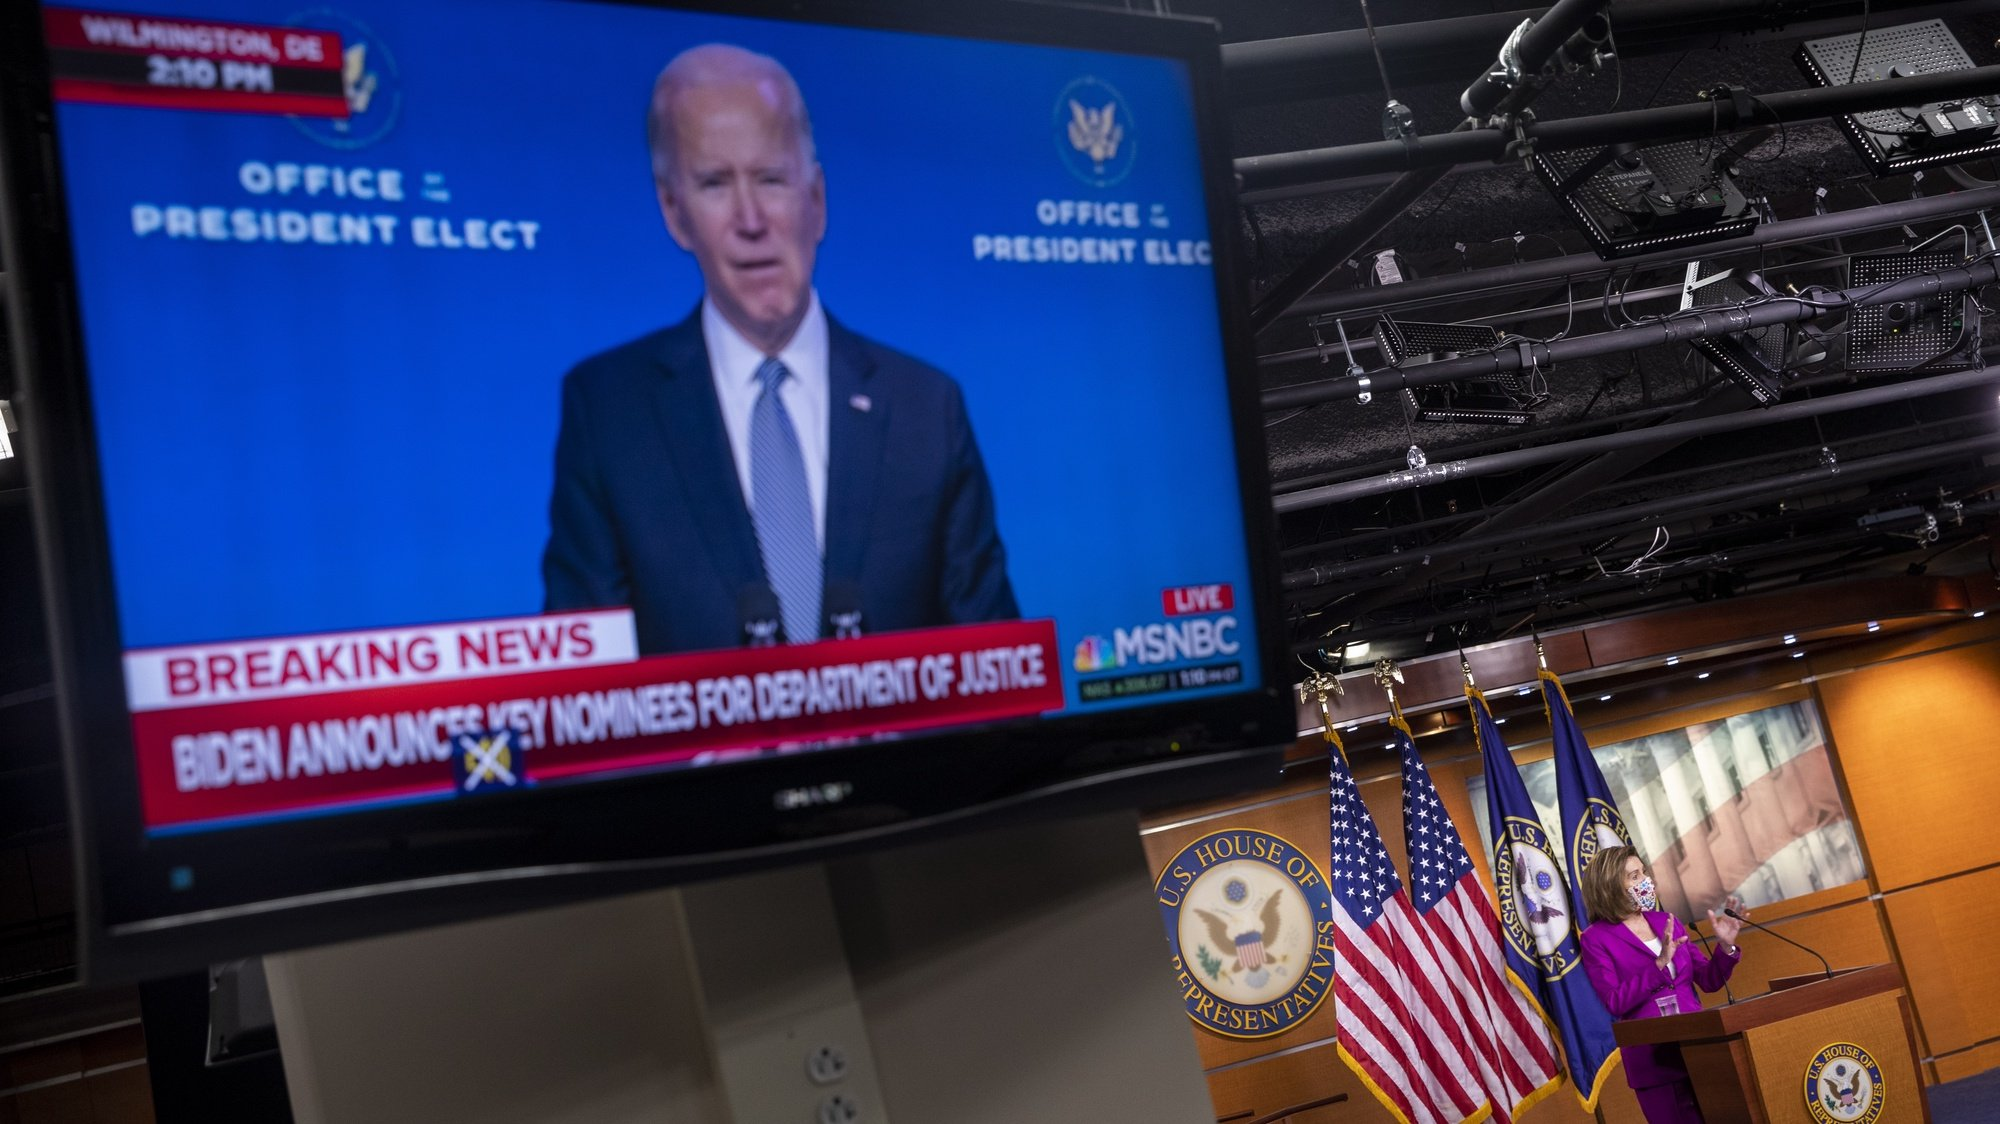 epa08925263 Vice President Elect Joe Biden is seen on television as Speaker of the House Nancy Pelosi delivers remarks during a press conference inside the US Capitol in Washington, DC, USA, 07 January 2021. Speaker Pelosi called for the removal of US President Donald J. Trump either by the cabinet invoking the 25th amendment or possibly through the House taking up articles of impeachment.  EPA/SHAWN THEW